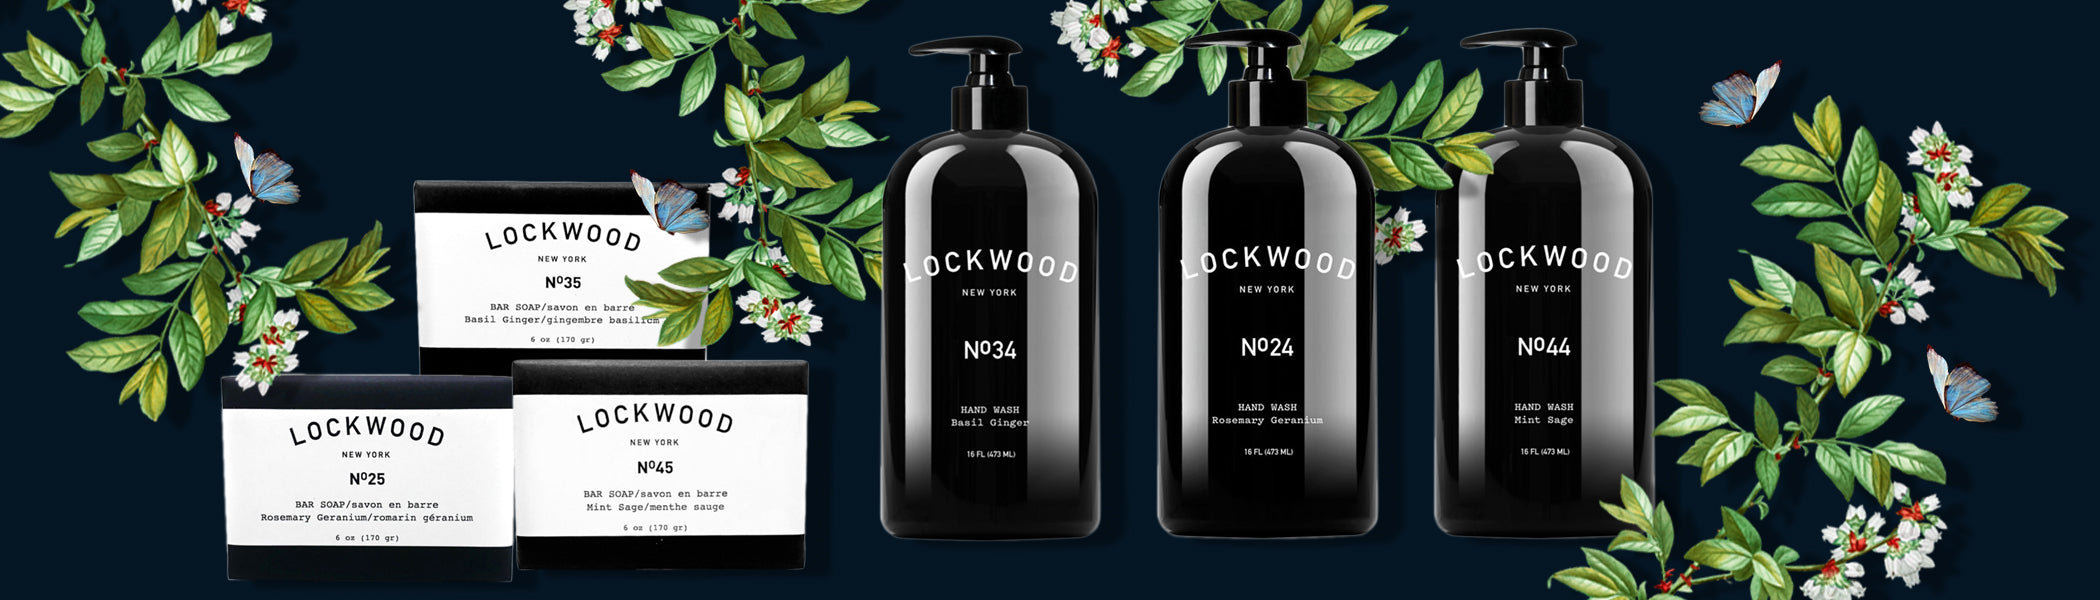 Luxurious Lockwood Soaps Collection | Neverabore.com